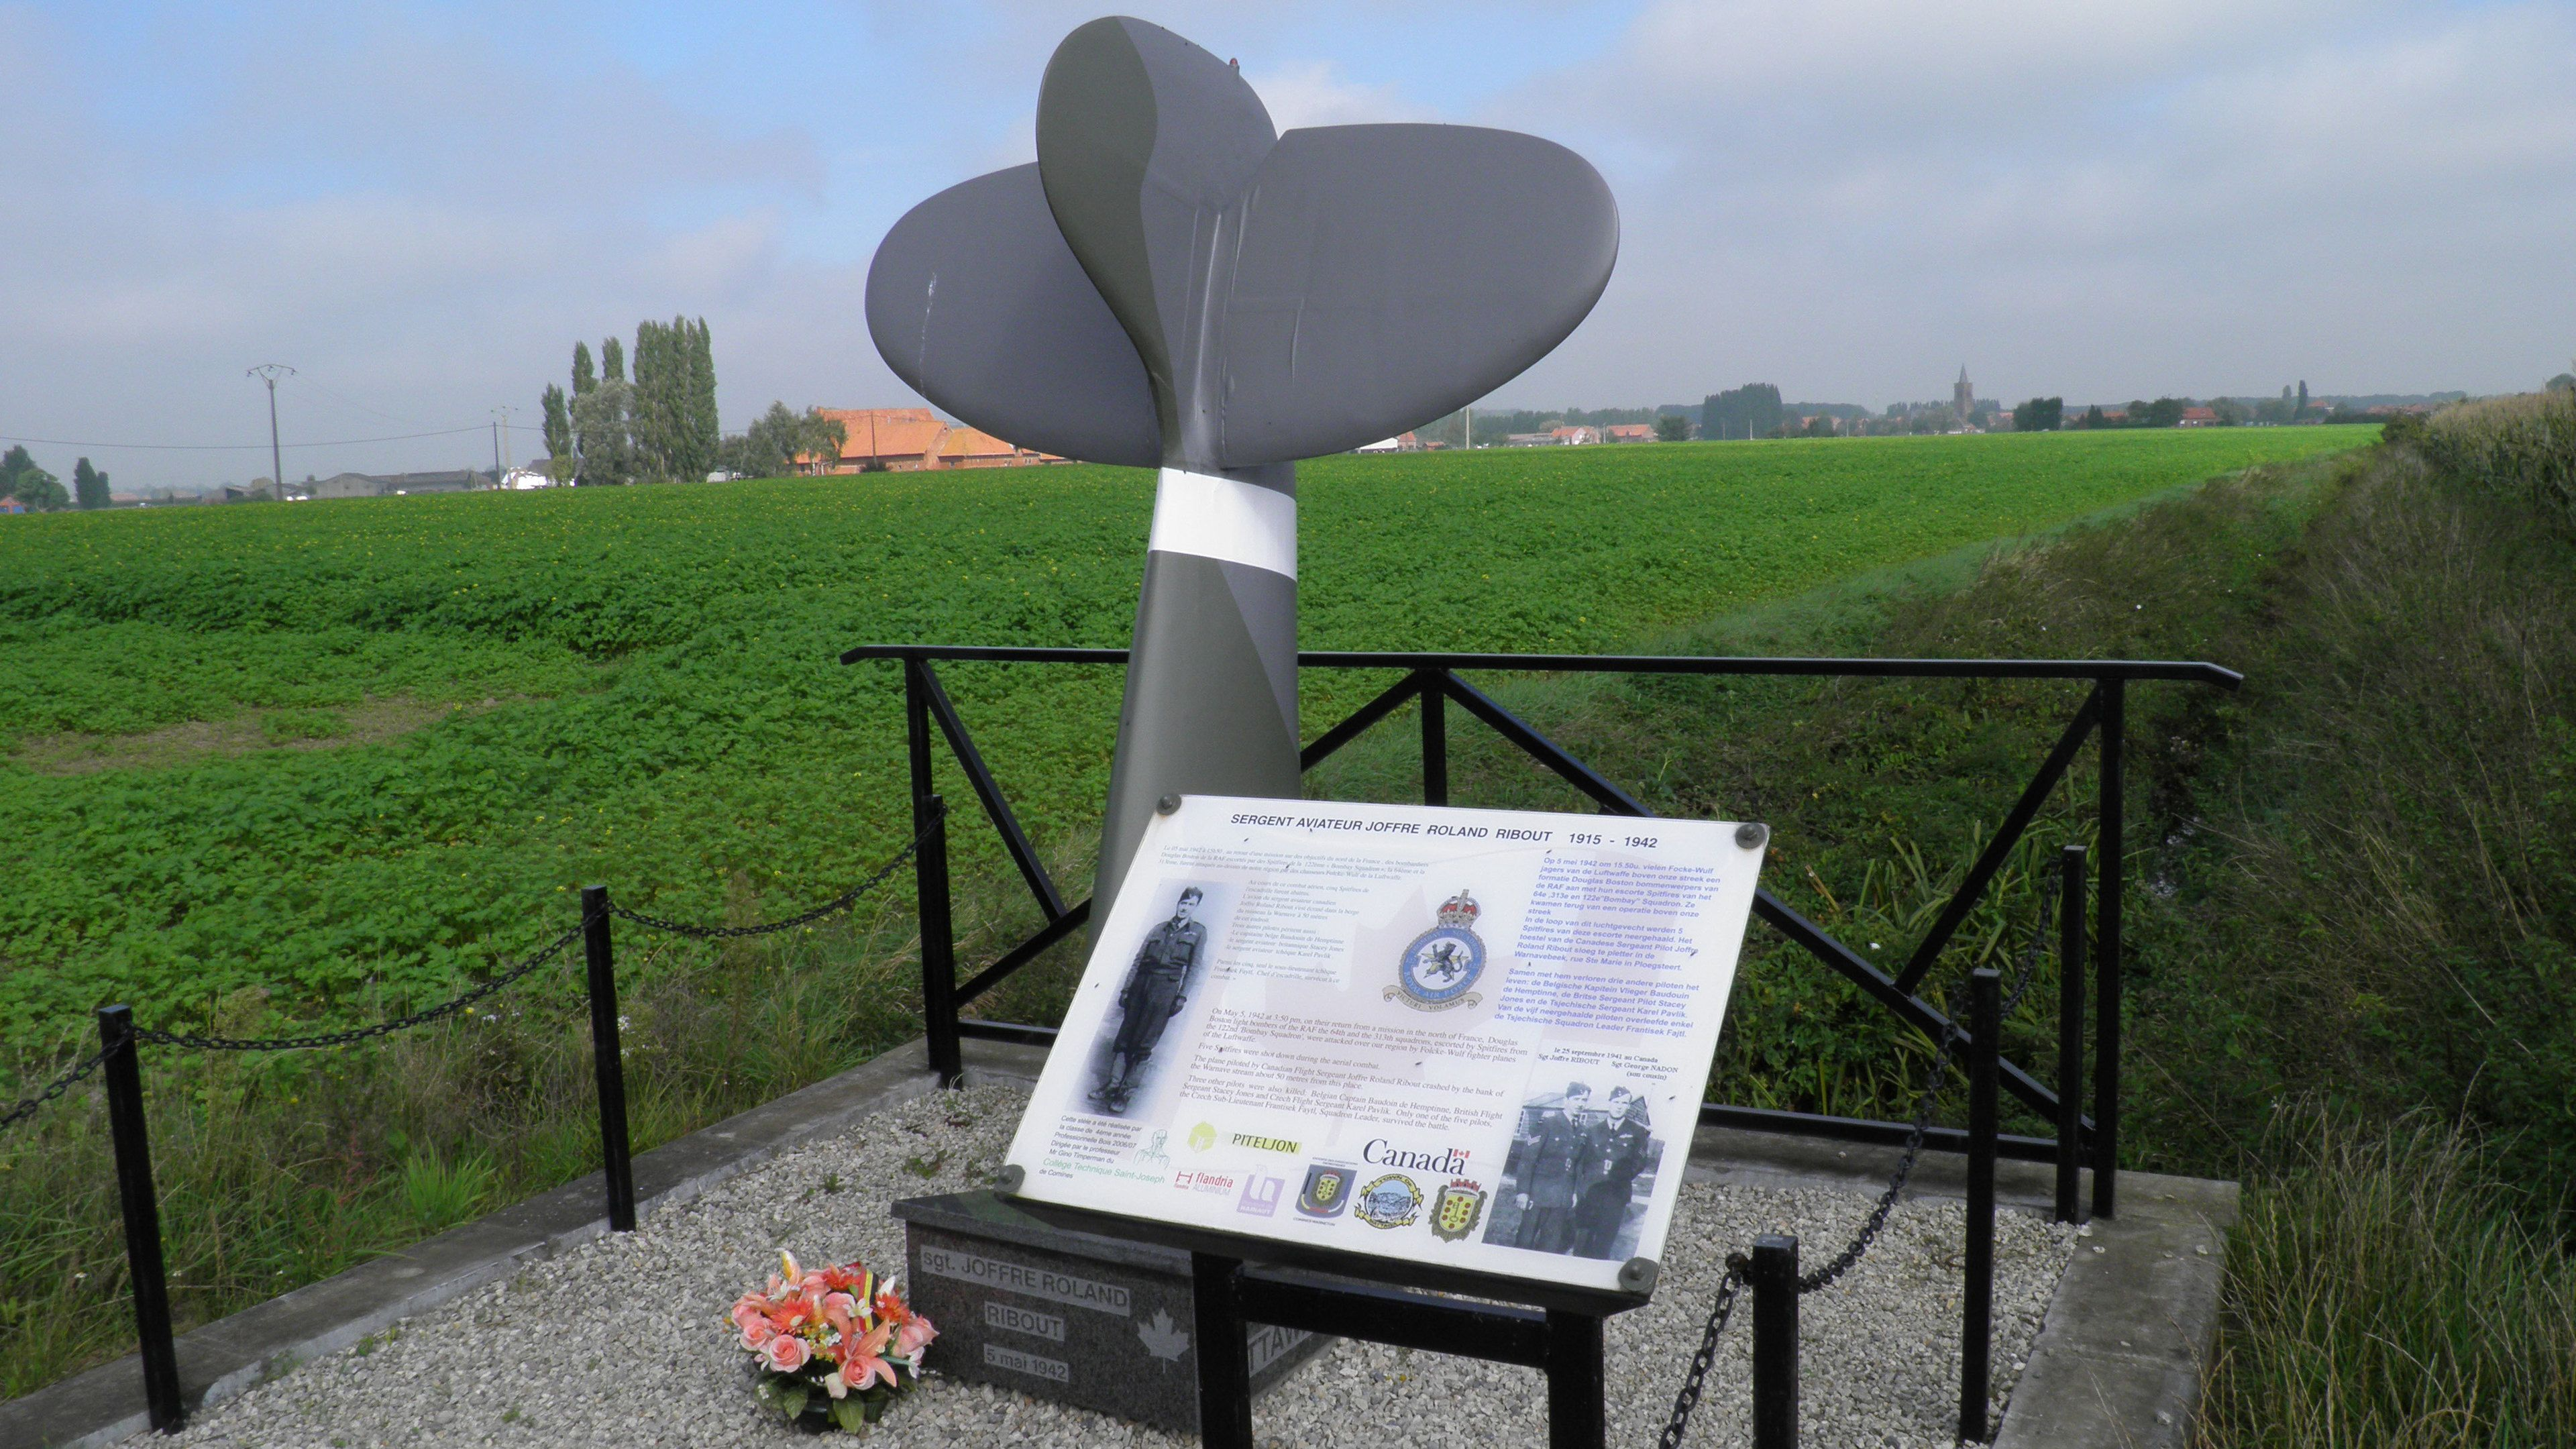 Grave marker and plaque for a fallen Canadian soldier